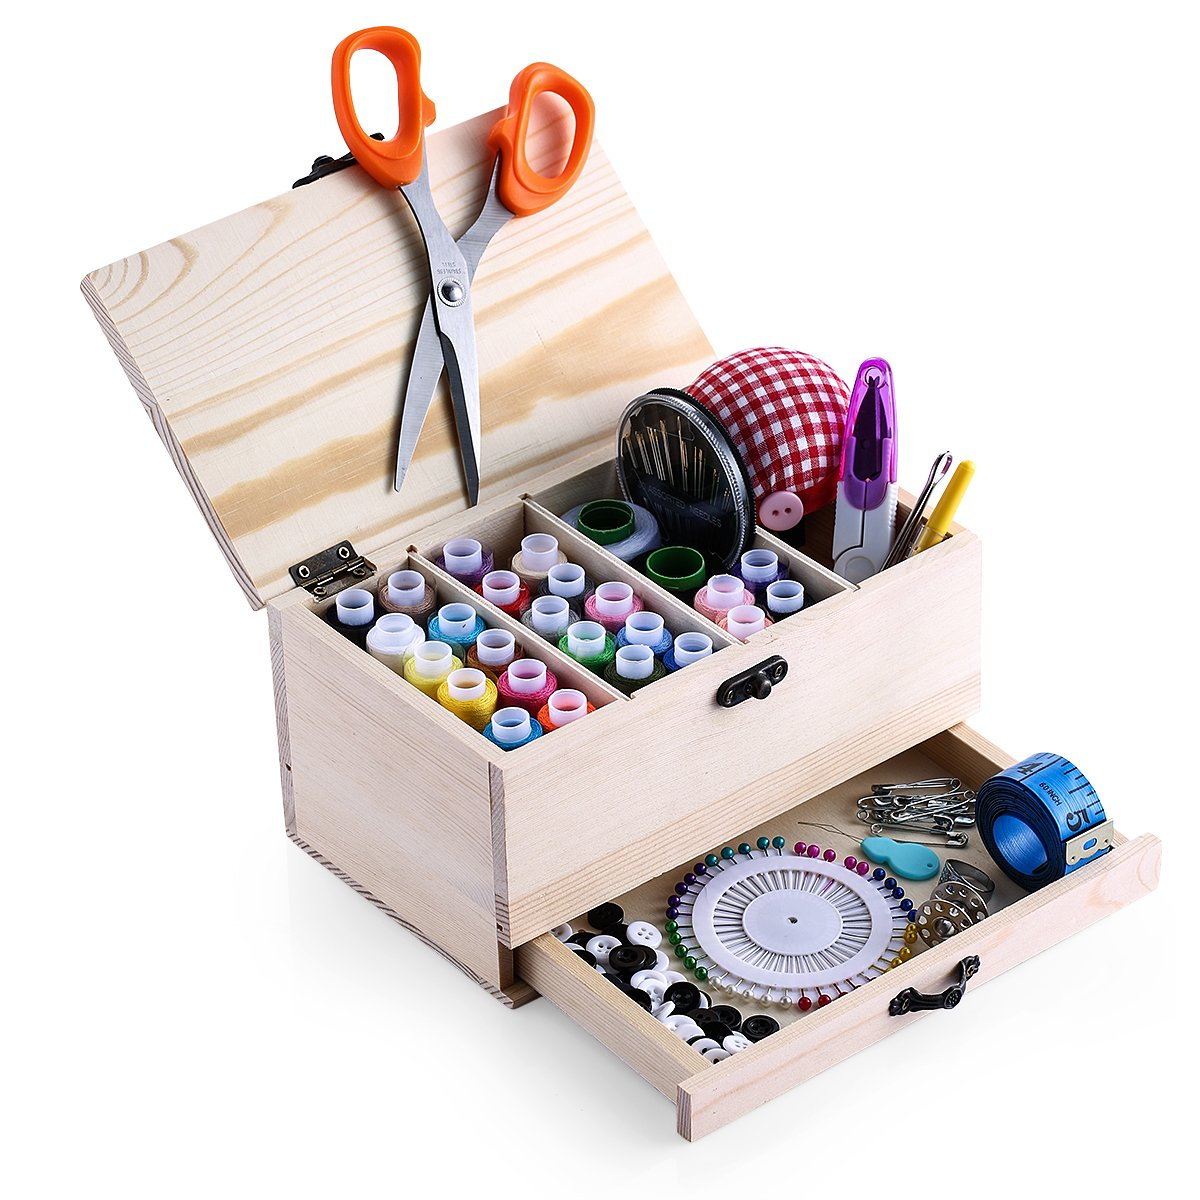 Wooden Sewing Basket Sewing Box Sewing Accessories Kit Good for Adults/Kids/Girls/Beginner/professional leopardprintfans 4336938069